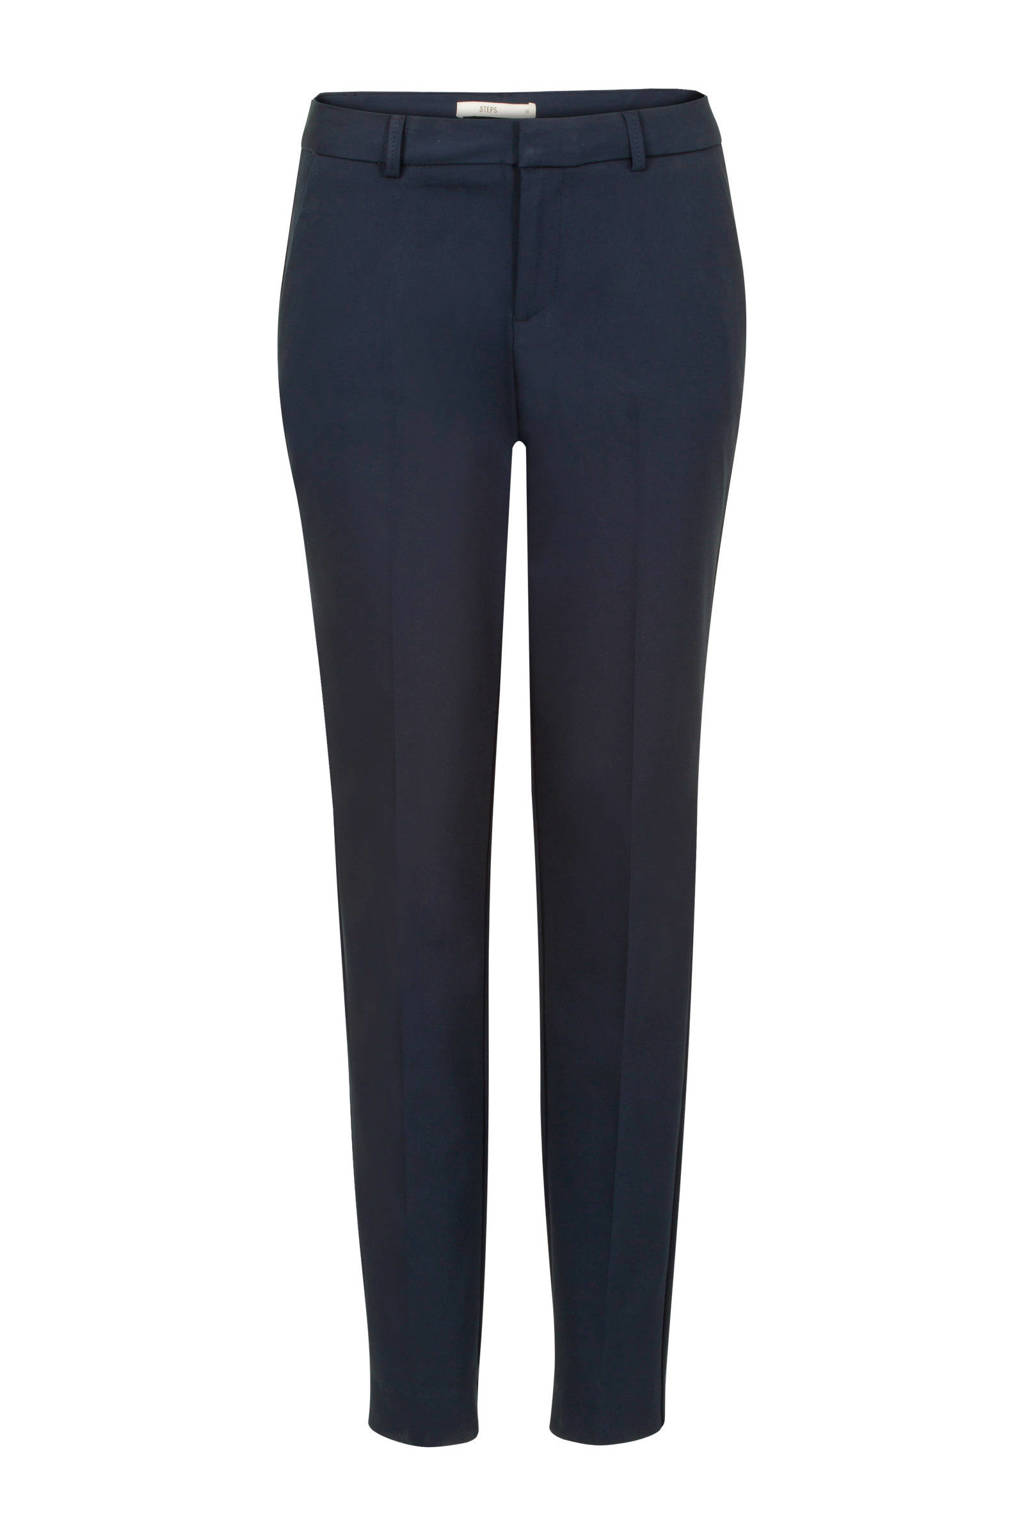 Steps cropped straight fit pantalon, Donkerblauw